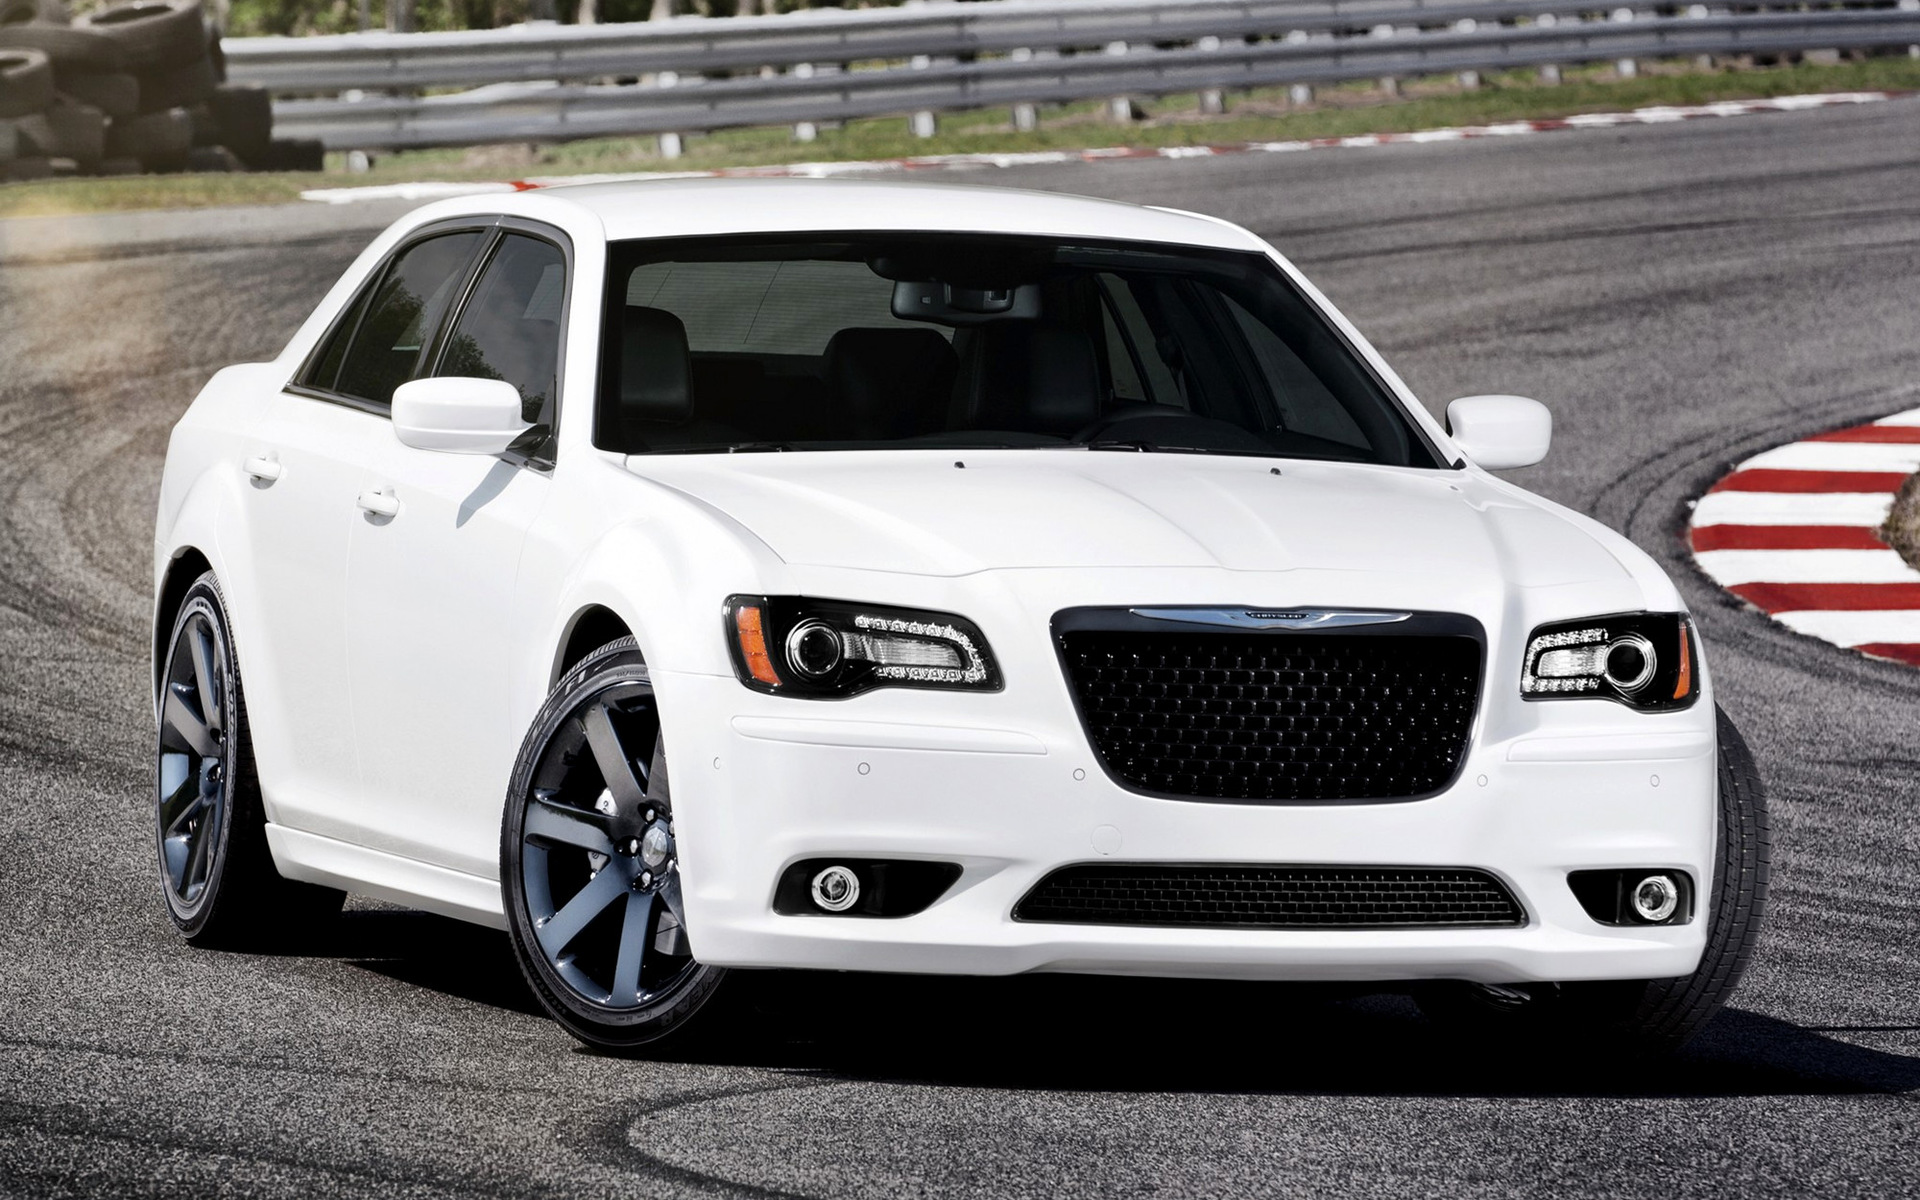 Nissan Luxury Car >> 2011 Chrysler 300 SRT8 - Wallpapers and HD Images | Car Pixel